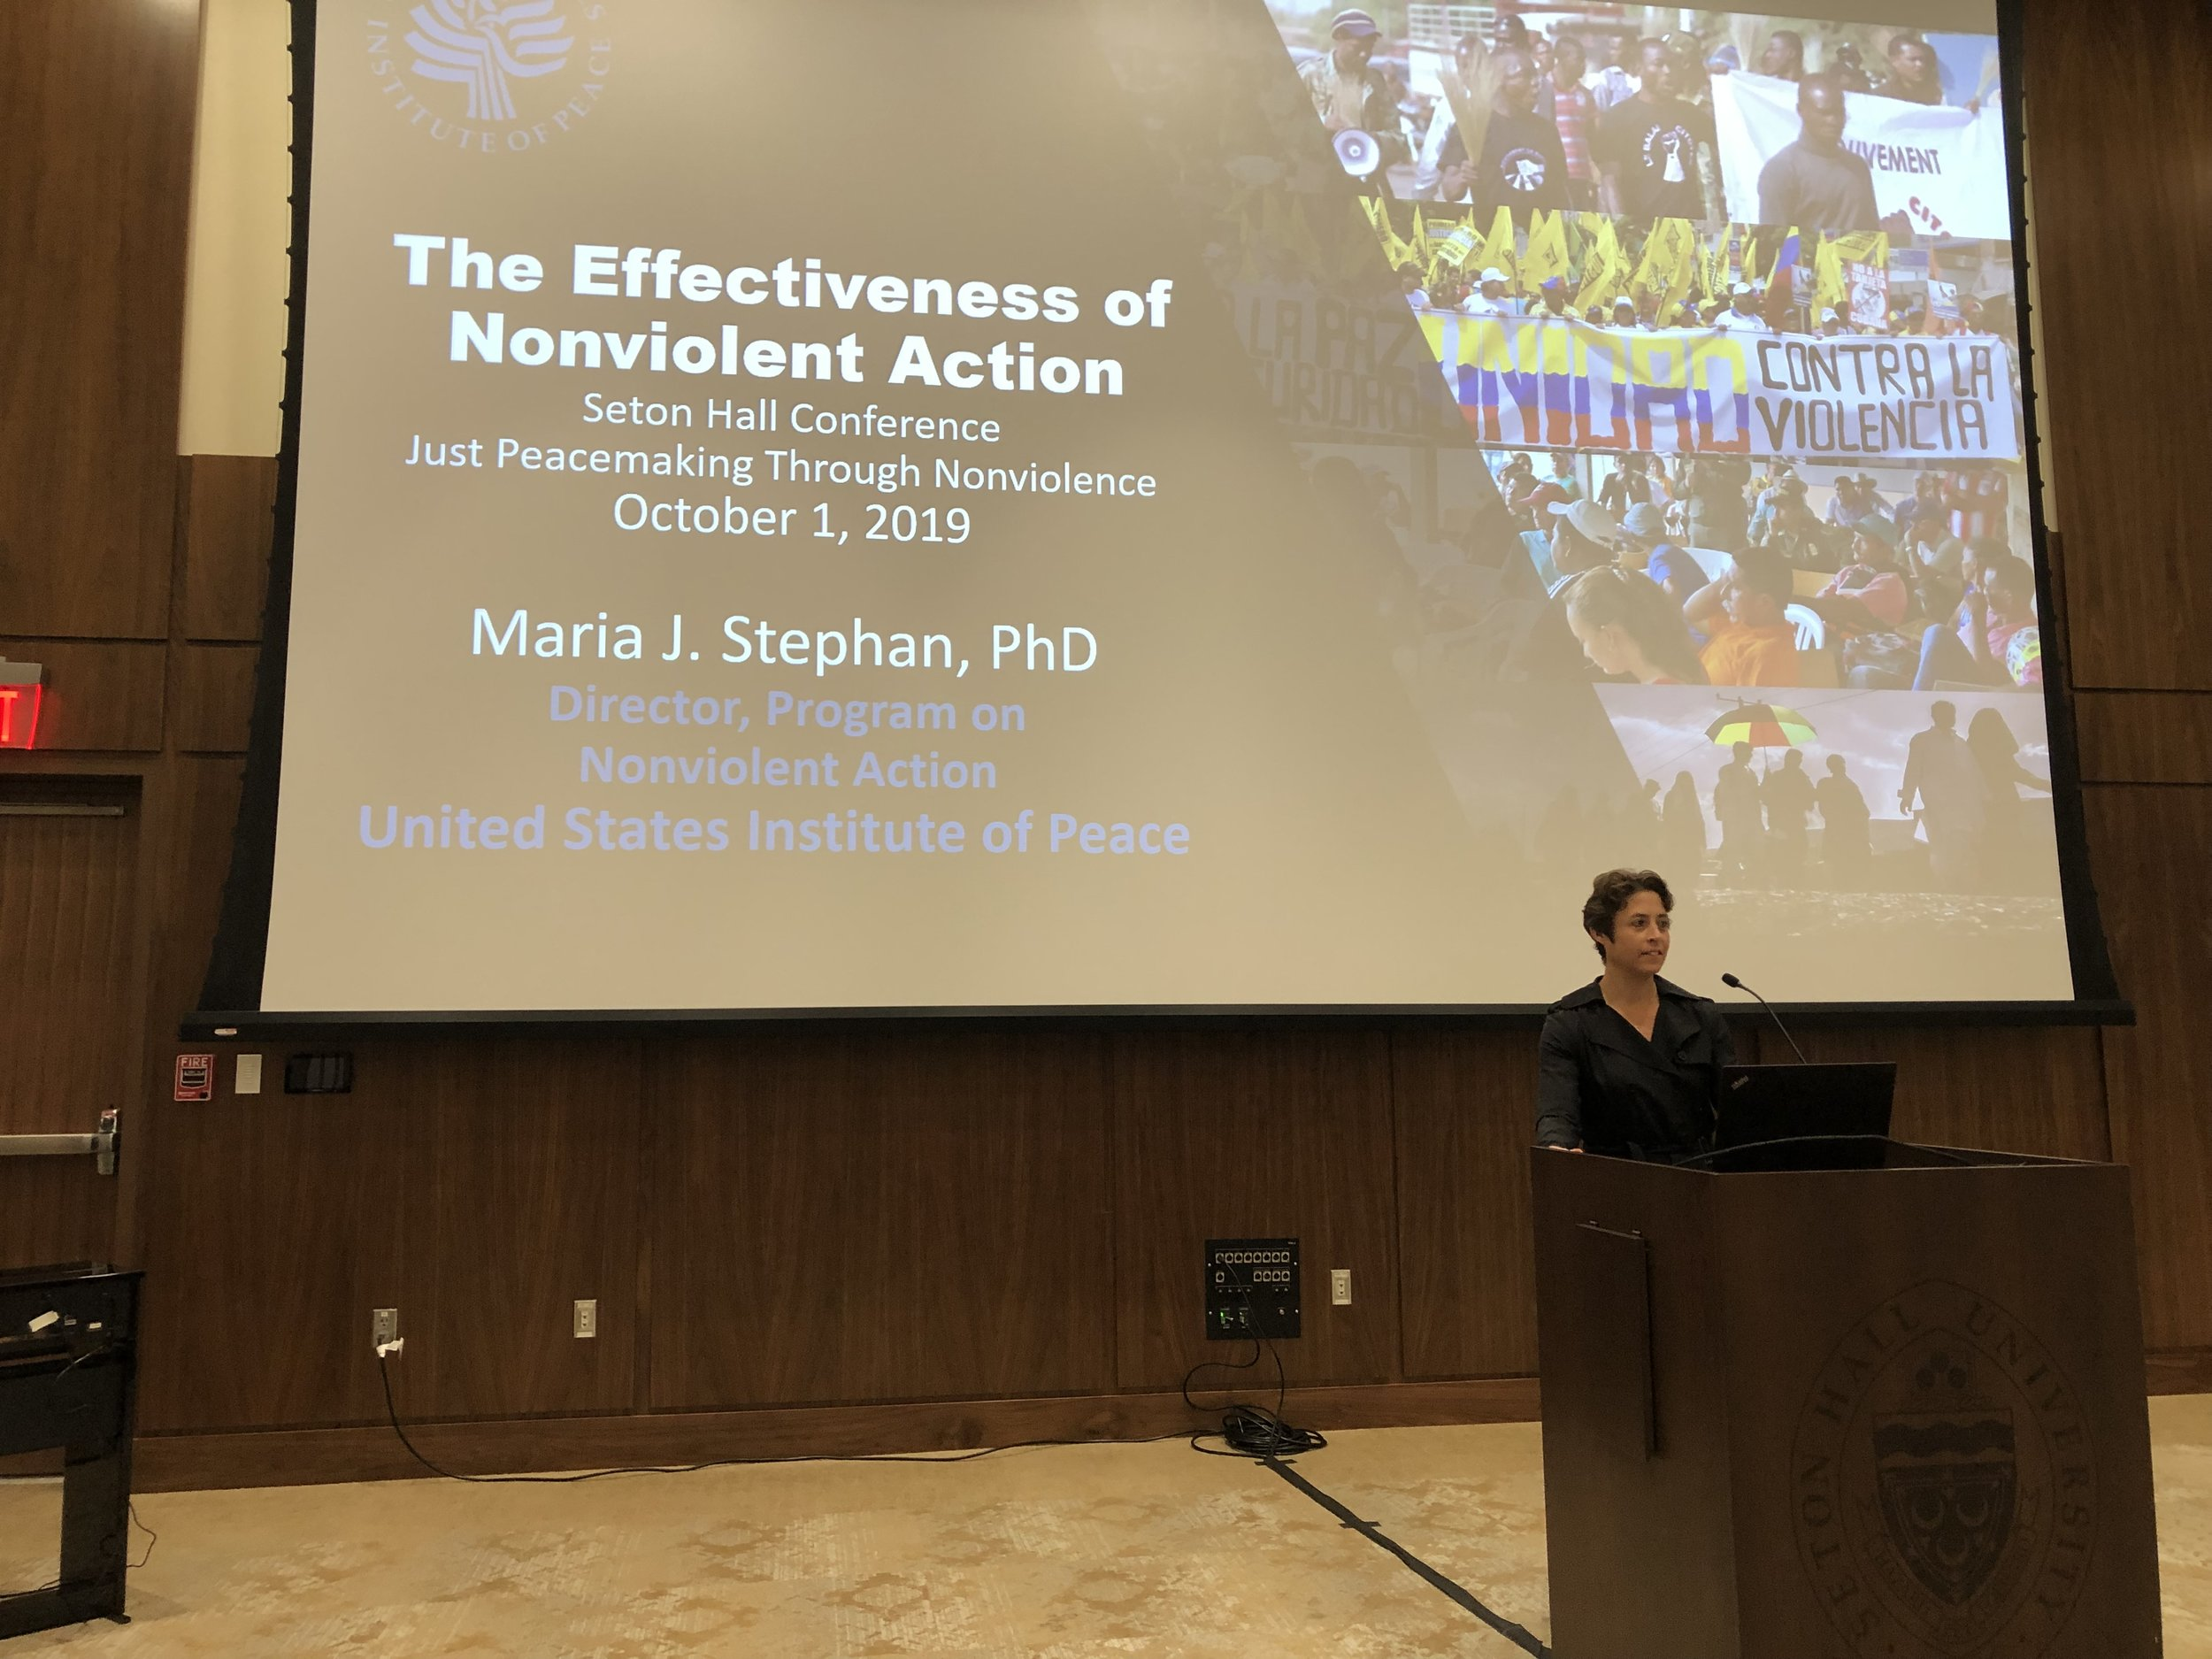 Marie Stephan shared the quantitative research she and Erica Chenoweth did showing that nonviolent action strategies are twice as effective as violence one.